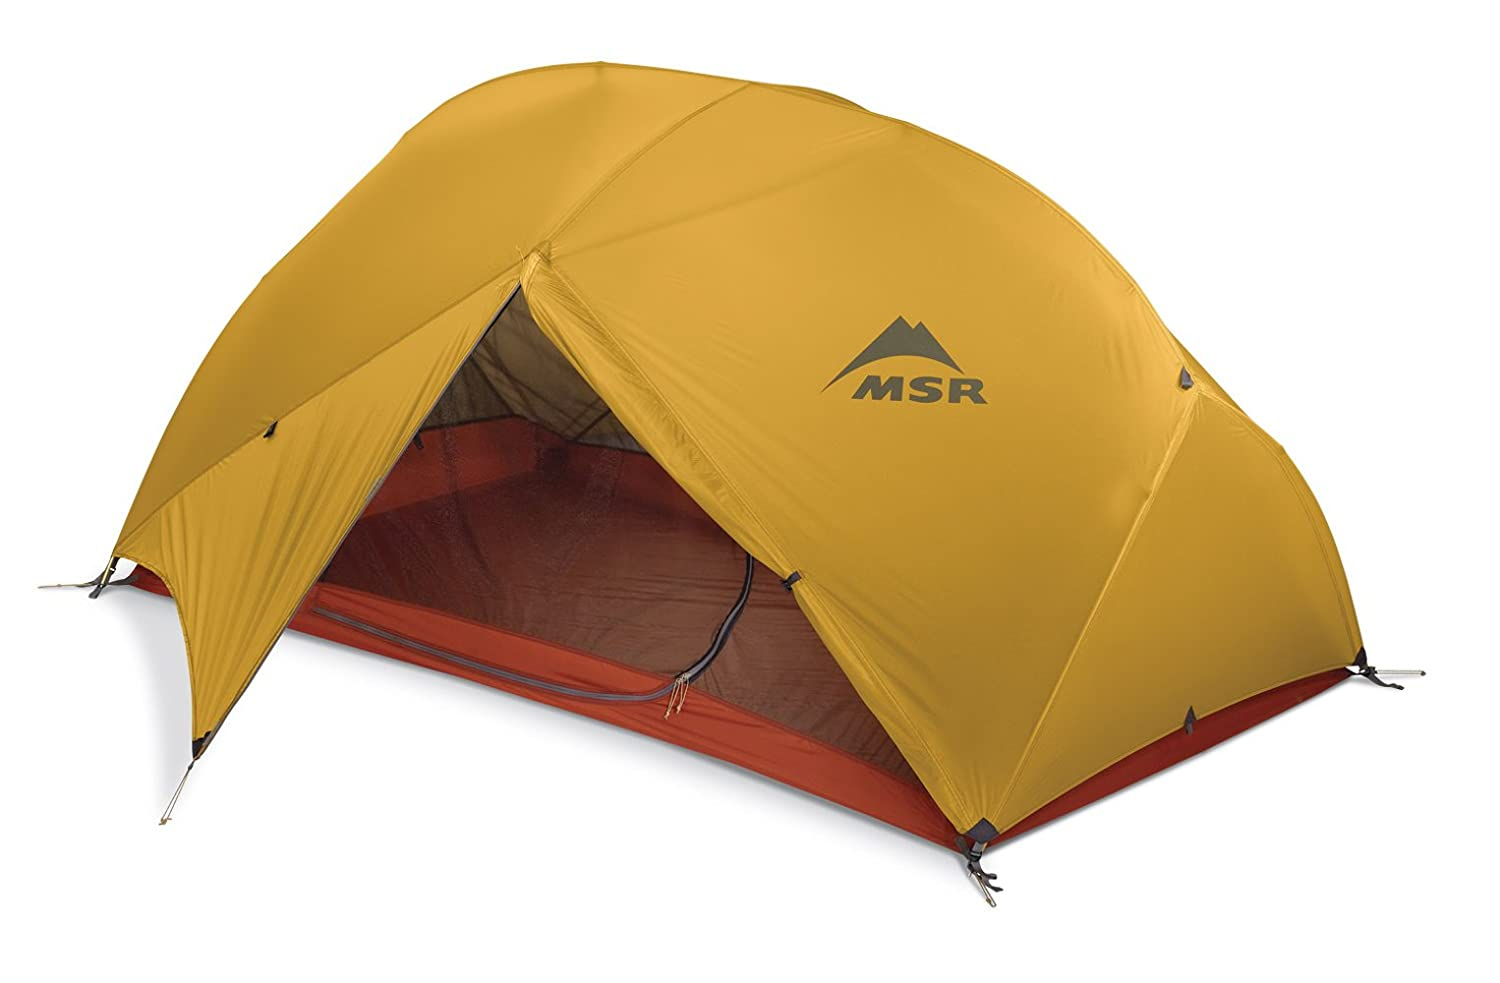 Amazon.com  MSR Hubba Hubba 2-Person Tent  Backpacking Tents  Sports u0026 Outdoors  sc 1 st  Amazon.com & Amazon.com : MSR Hubba Hubba 2-Person Tent : Backpacking Tents ...